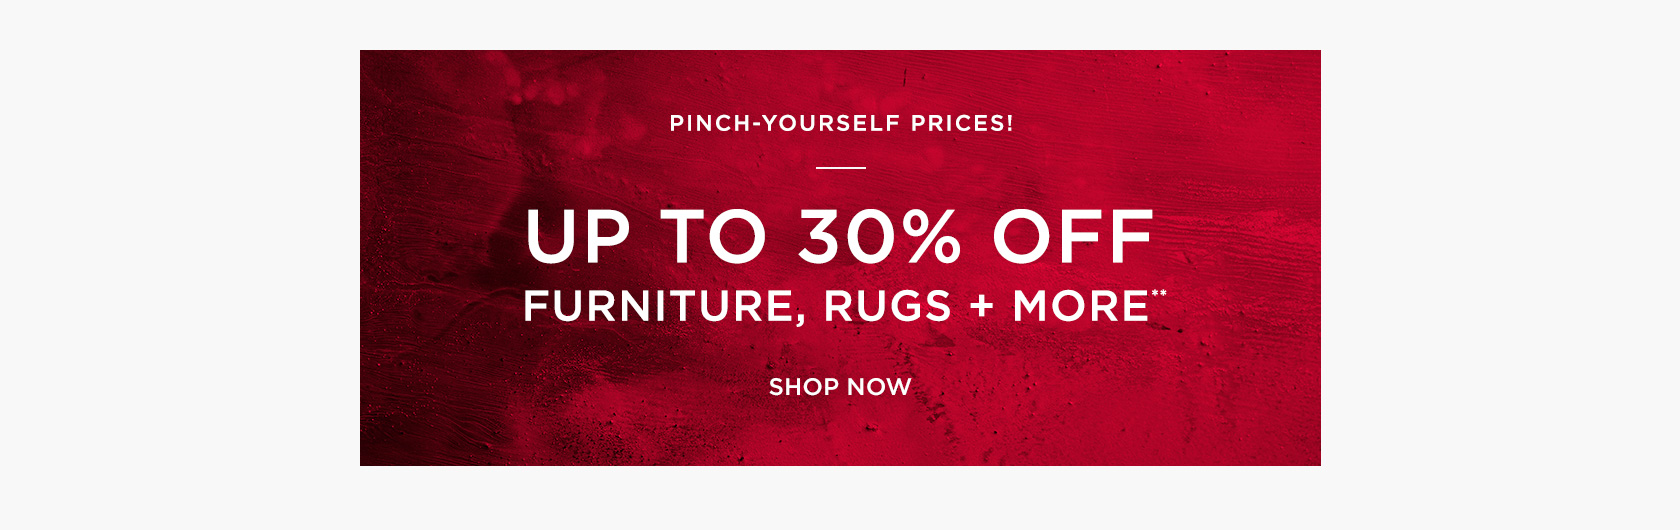 Up To 30 Percent Off Furniture, Rugs + More